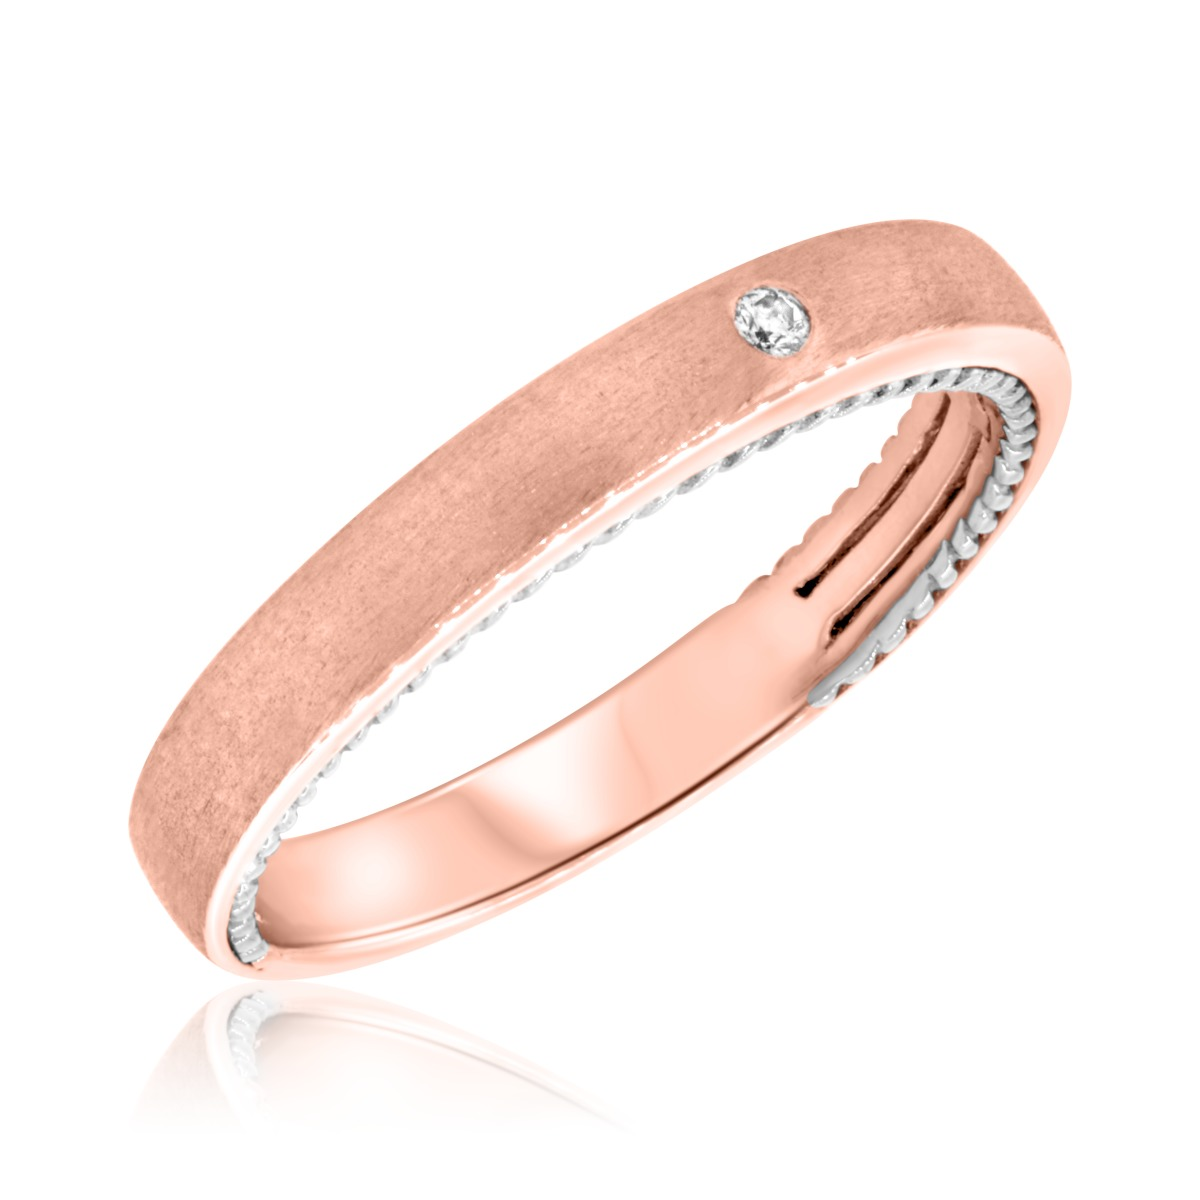 1/20 Carat T.W. Diamond Ladies Wedding Band  10K Rose Gold